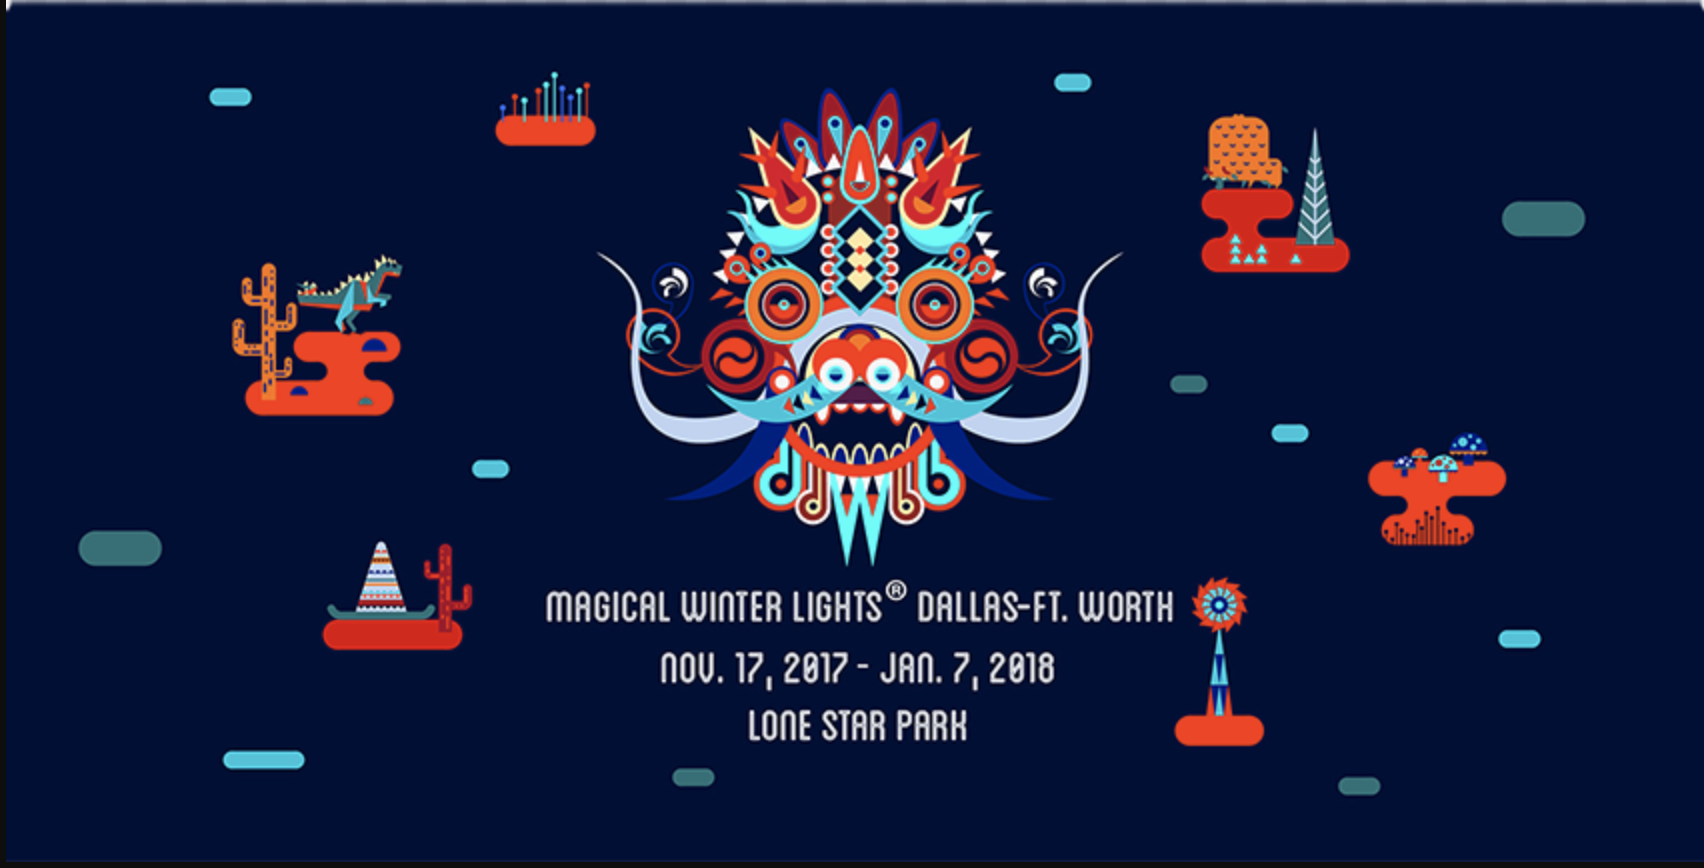 tickets for magical winter lights 2017 dallas fort worth in grand prairie from showclix